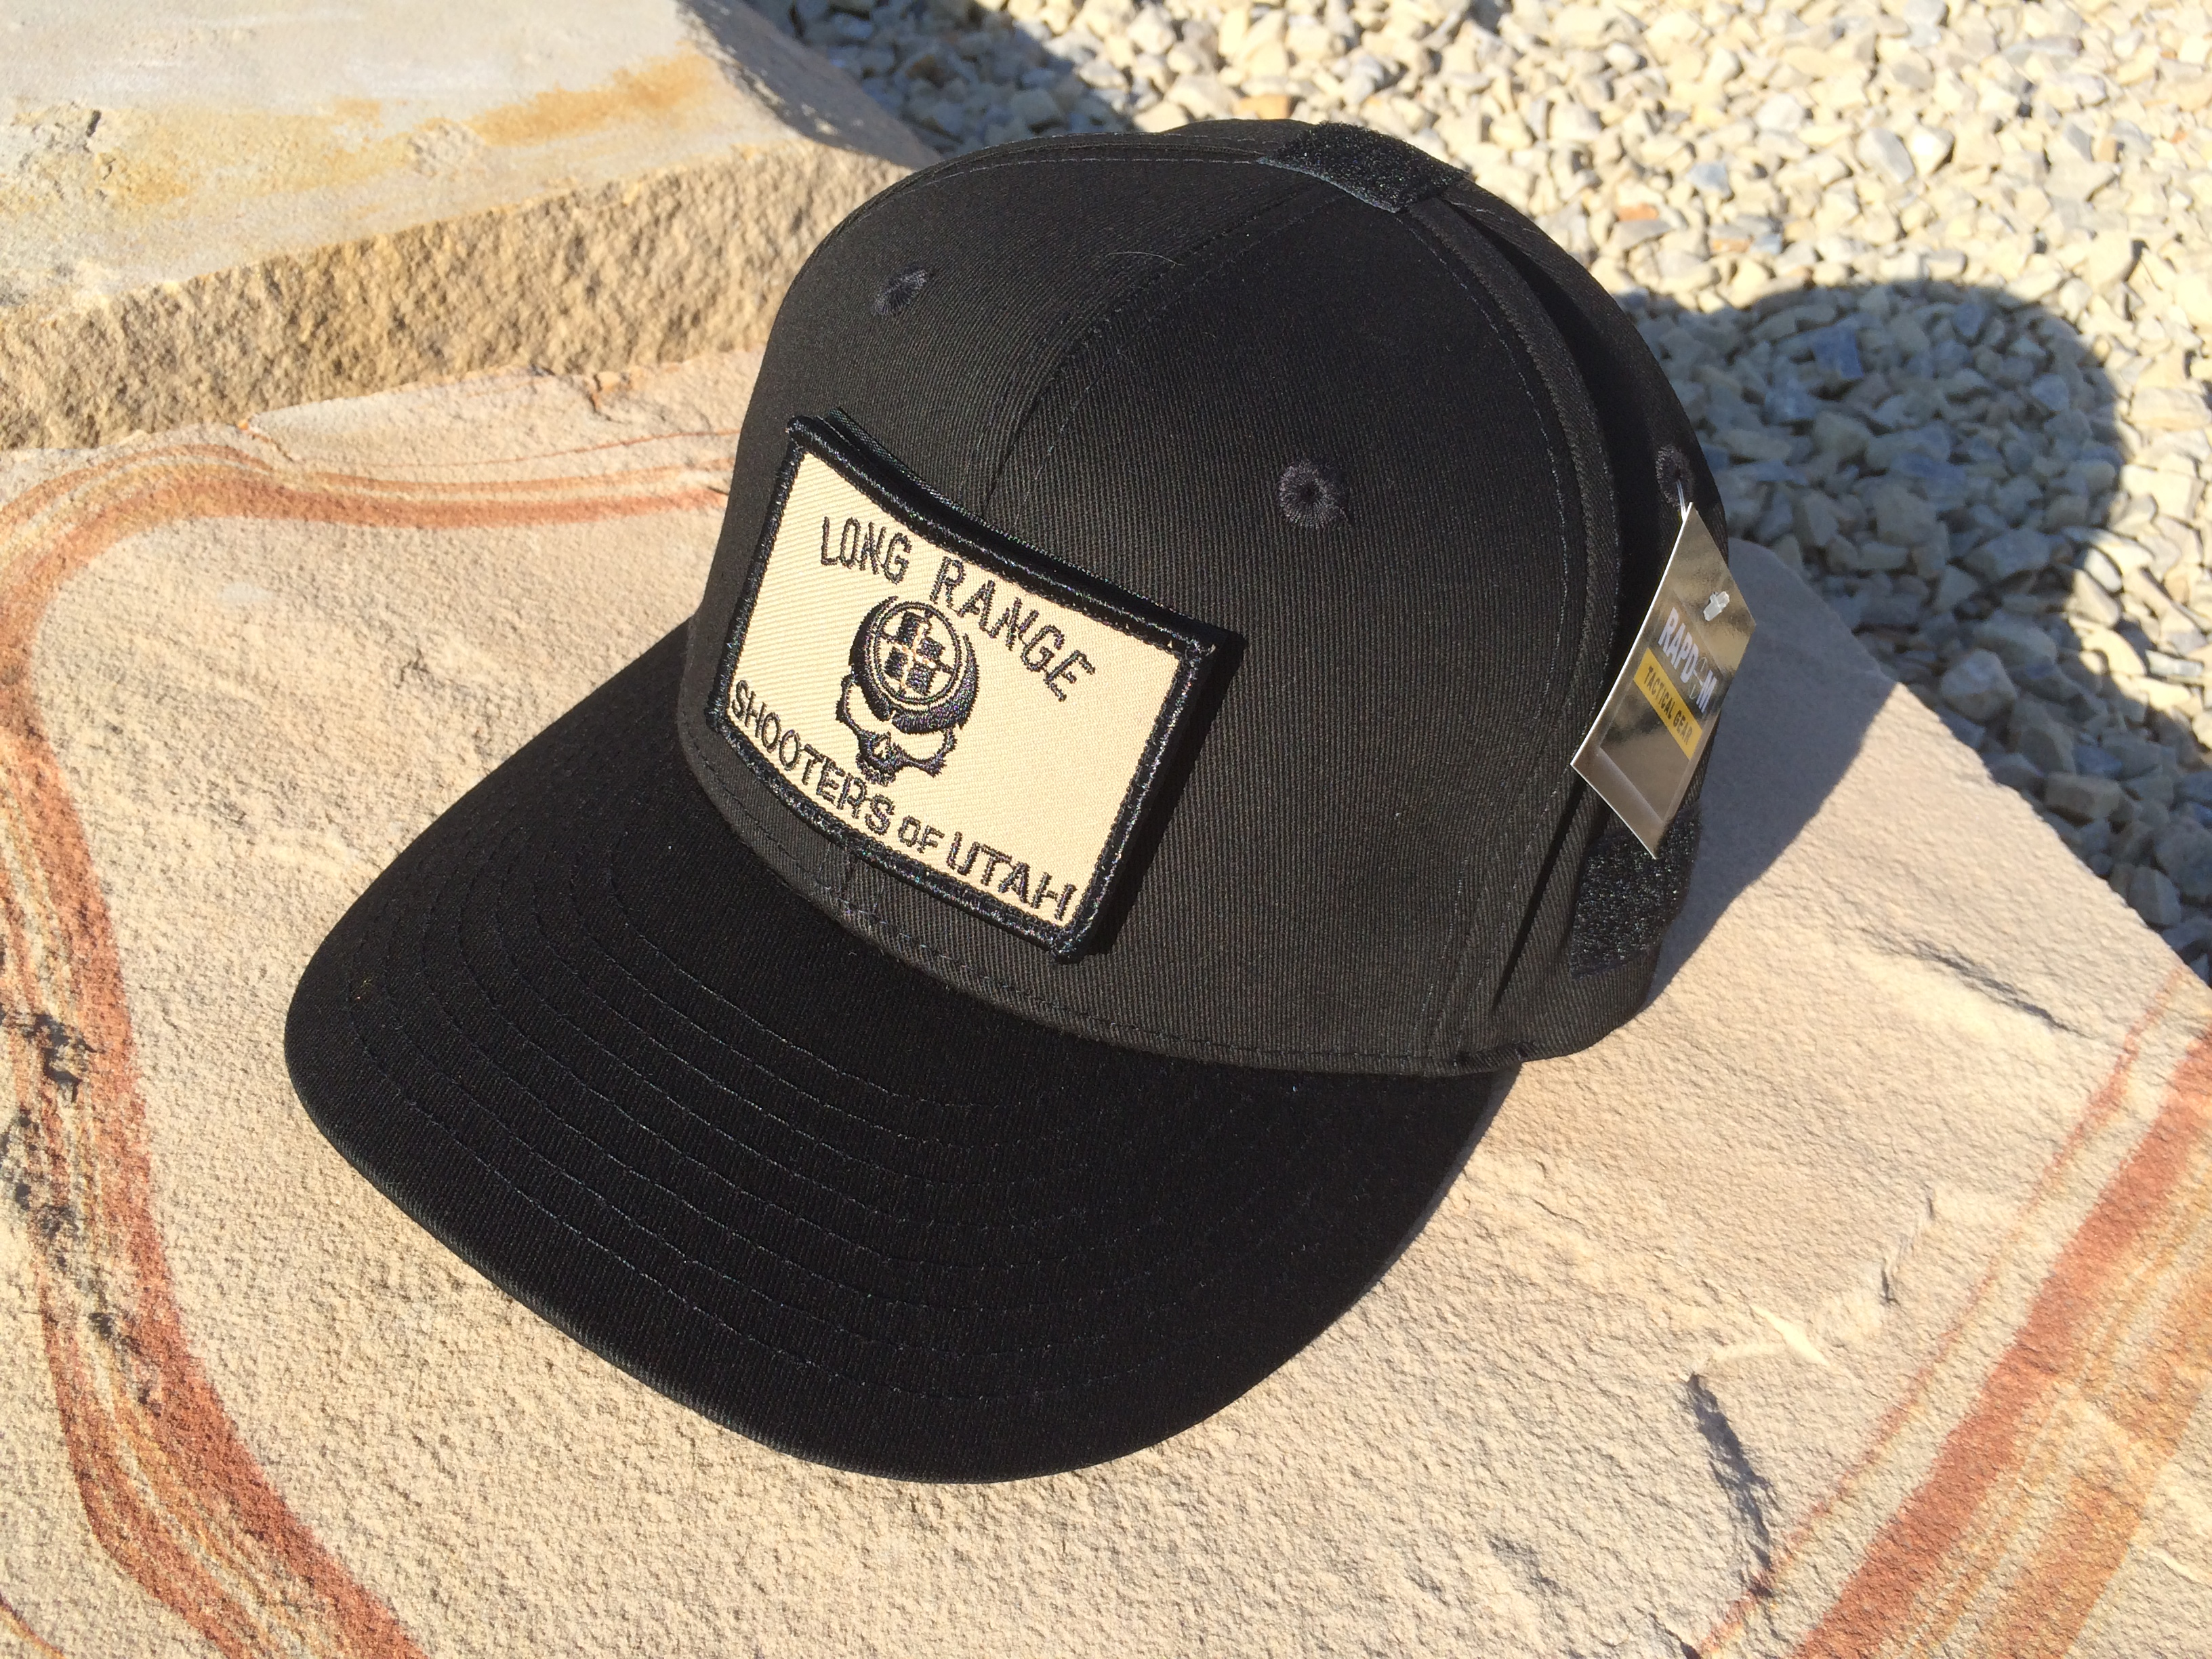 Lrsu Operator Hat With Velcro Skull Patch